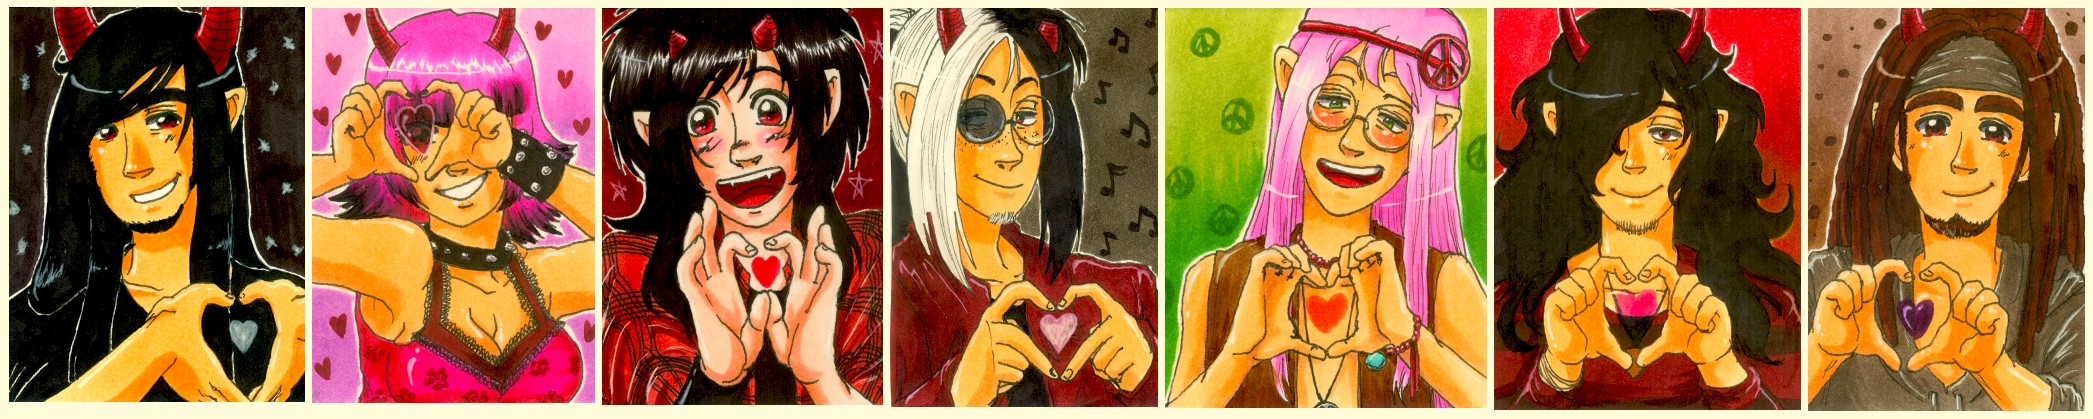 Sweetest Poison -hearts- by Keed-Kat